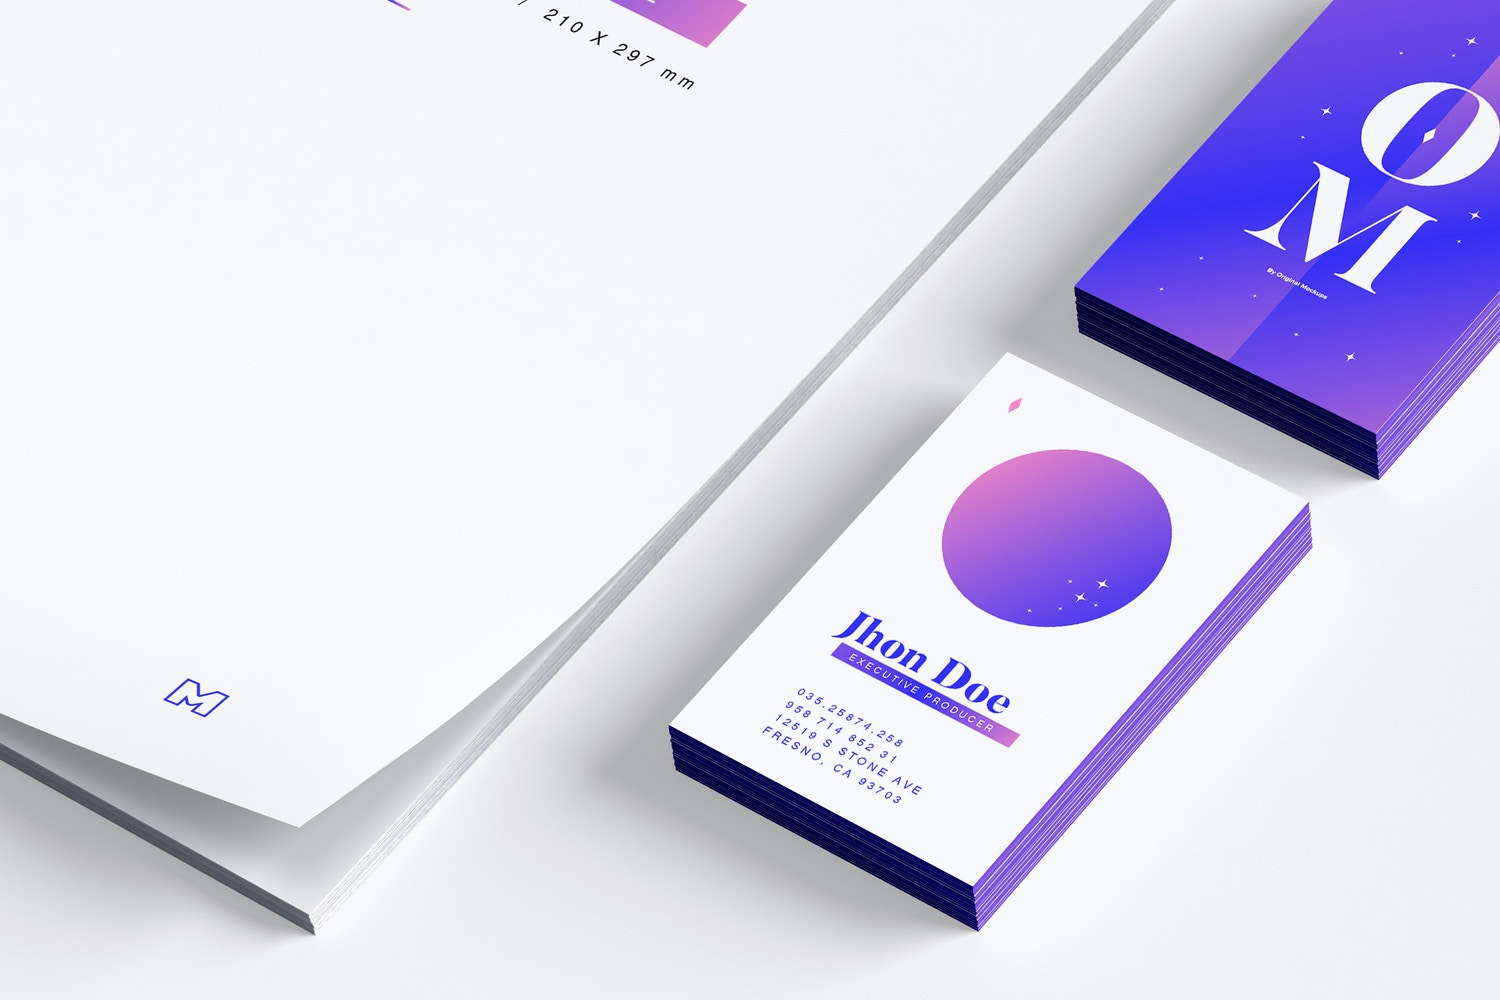 This mockup has a great resolution, take advantage of it.